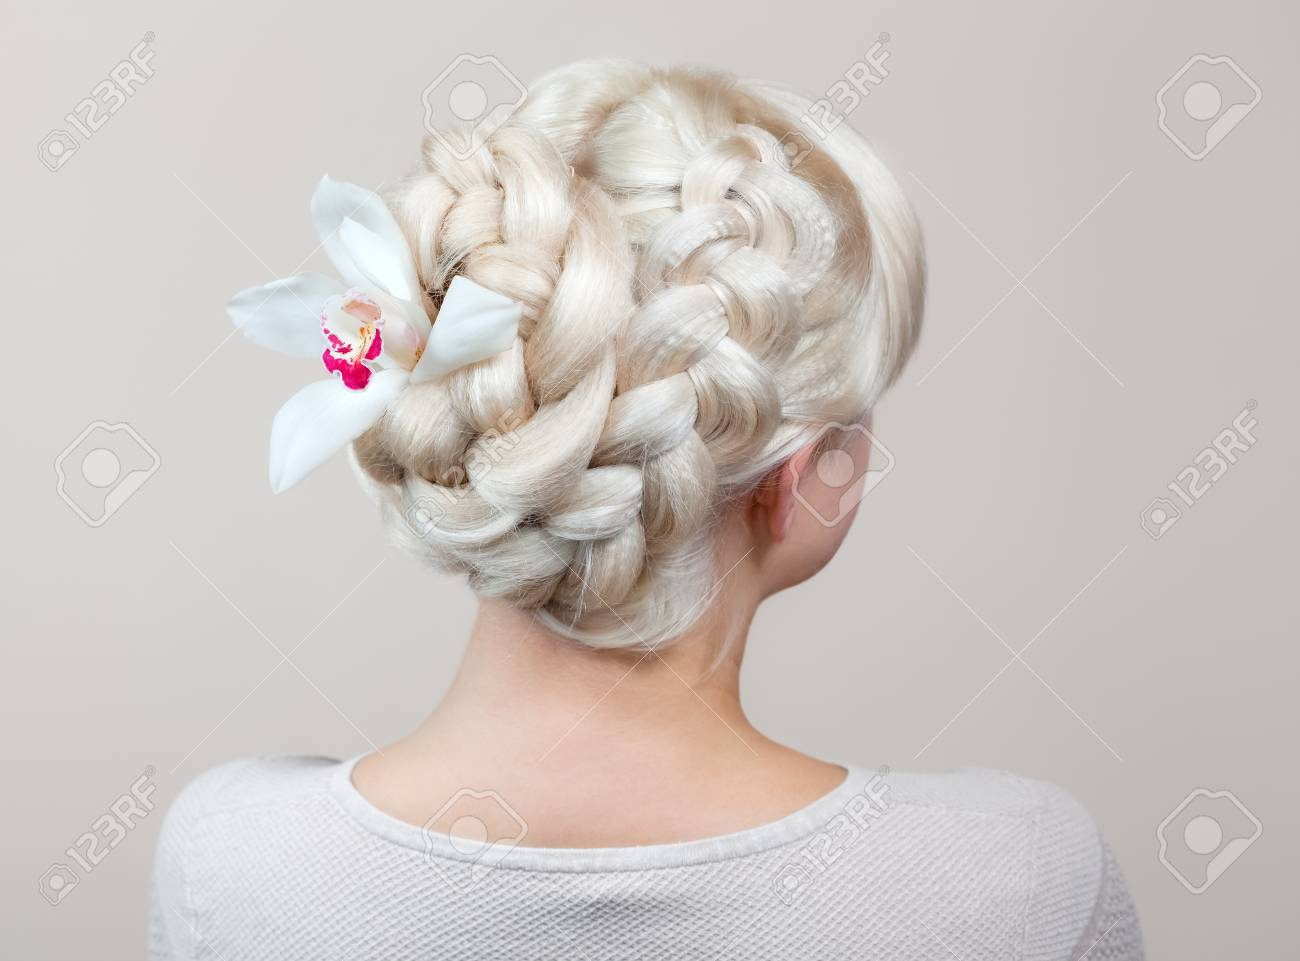 Beautiful Girl With Blonde Hair Hairdresser Weaves A Braid Stock